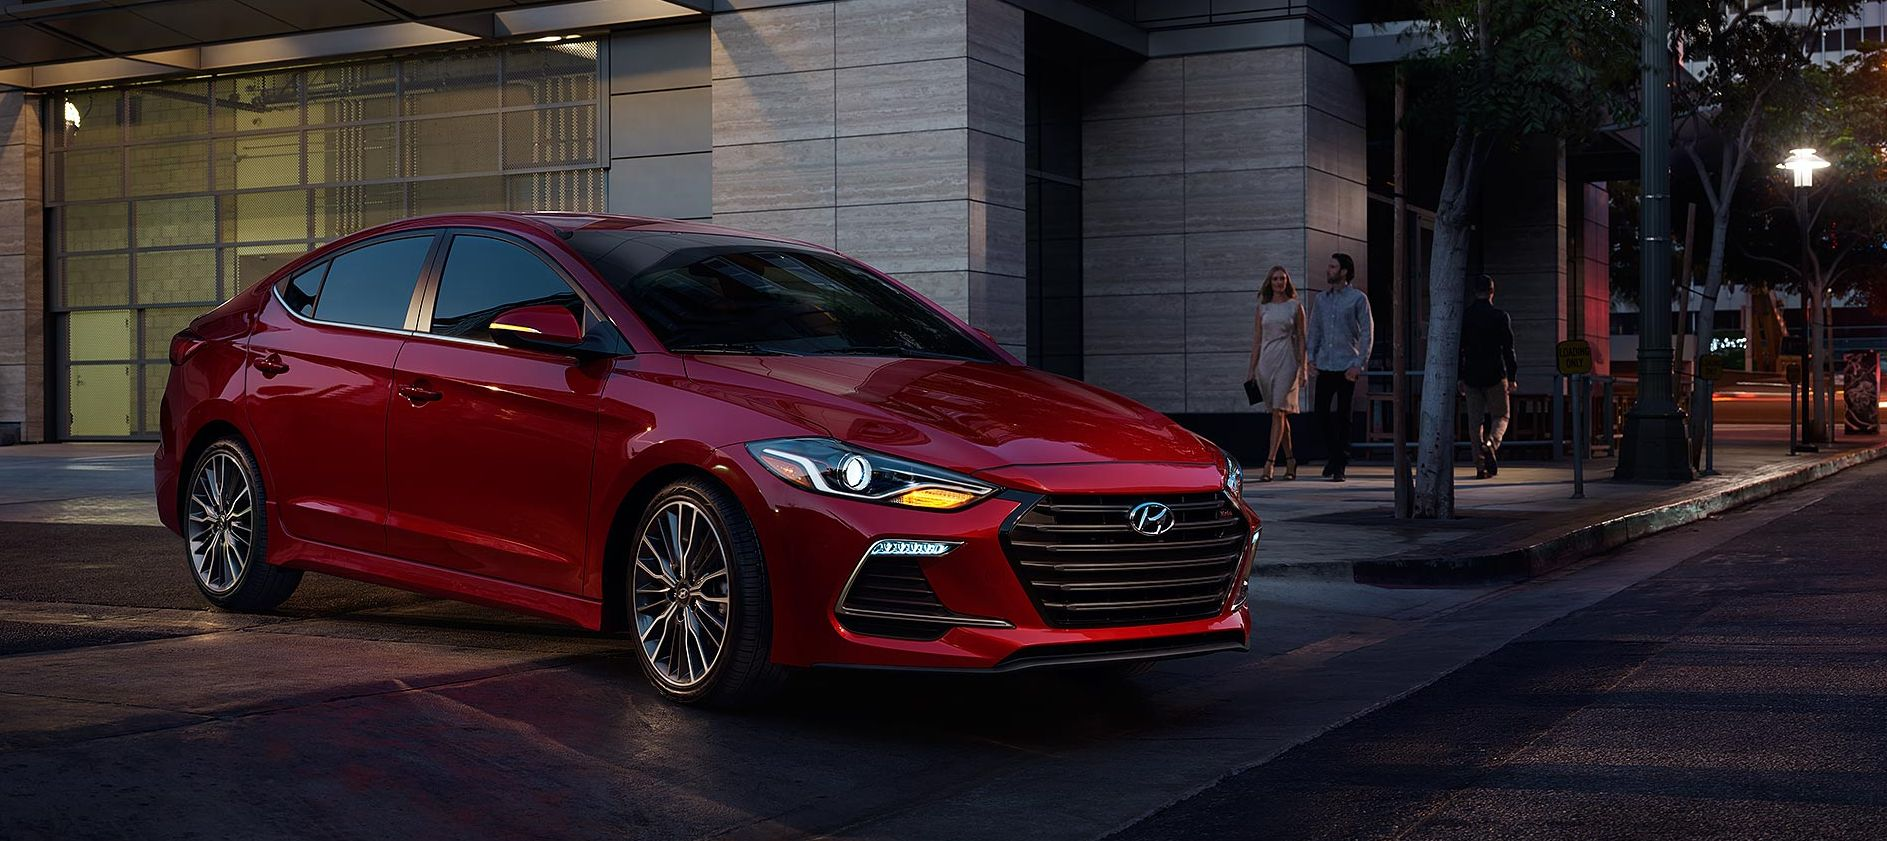 2017 Hyundai Elantra Safety Features near Washington, DC